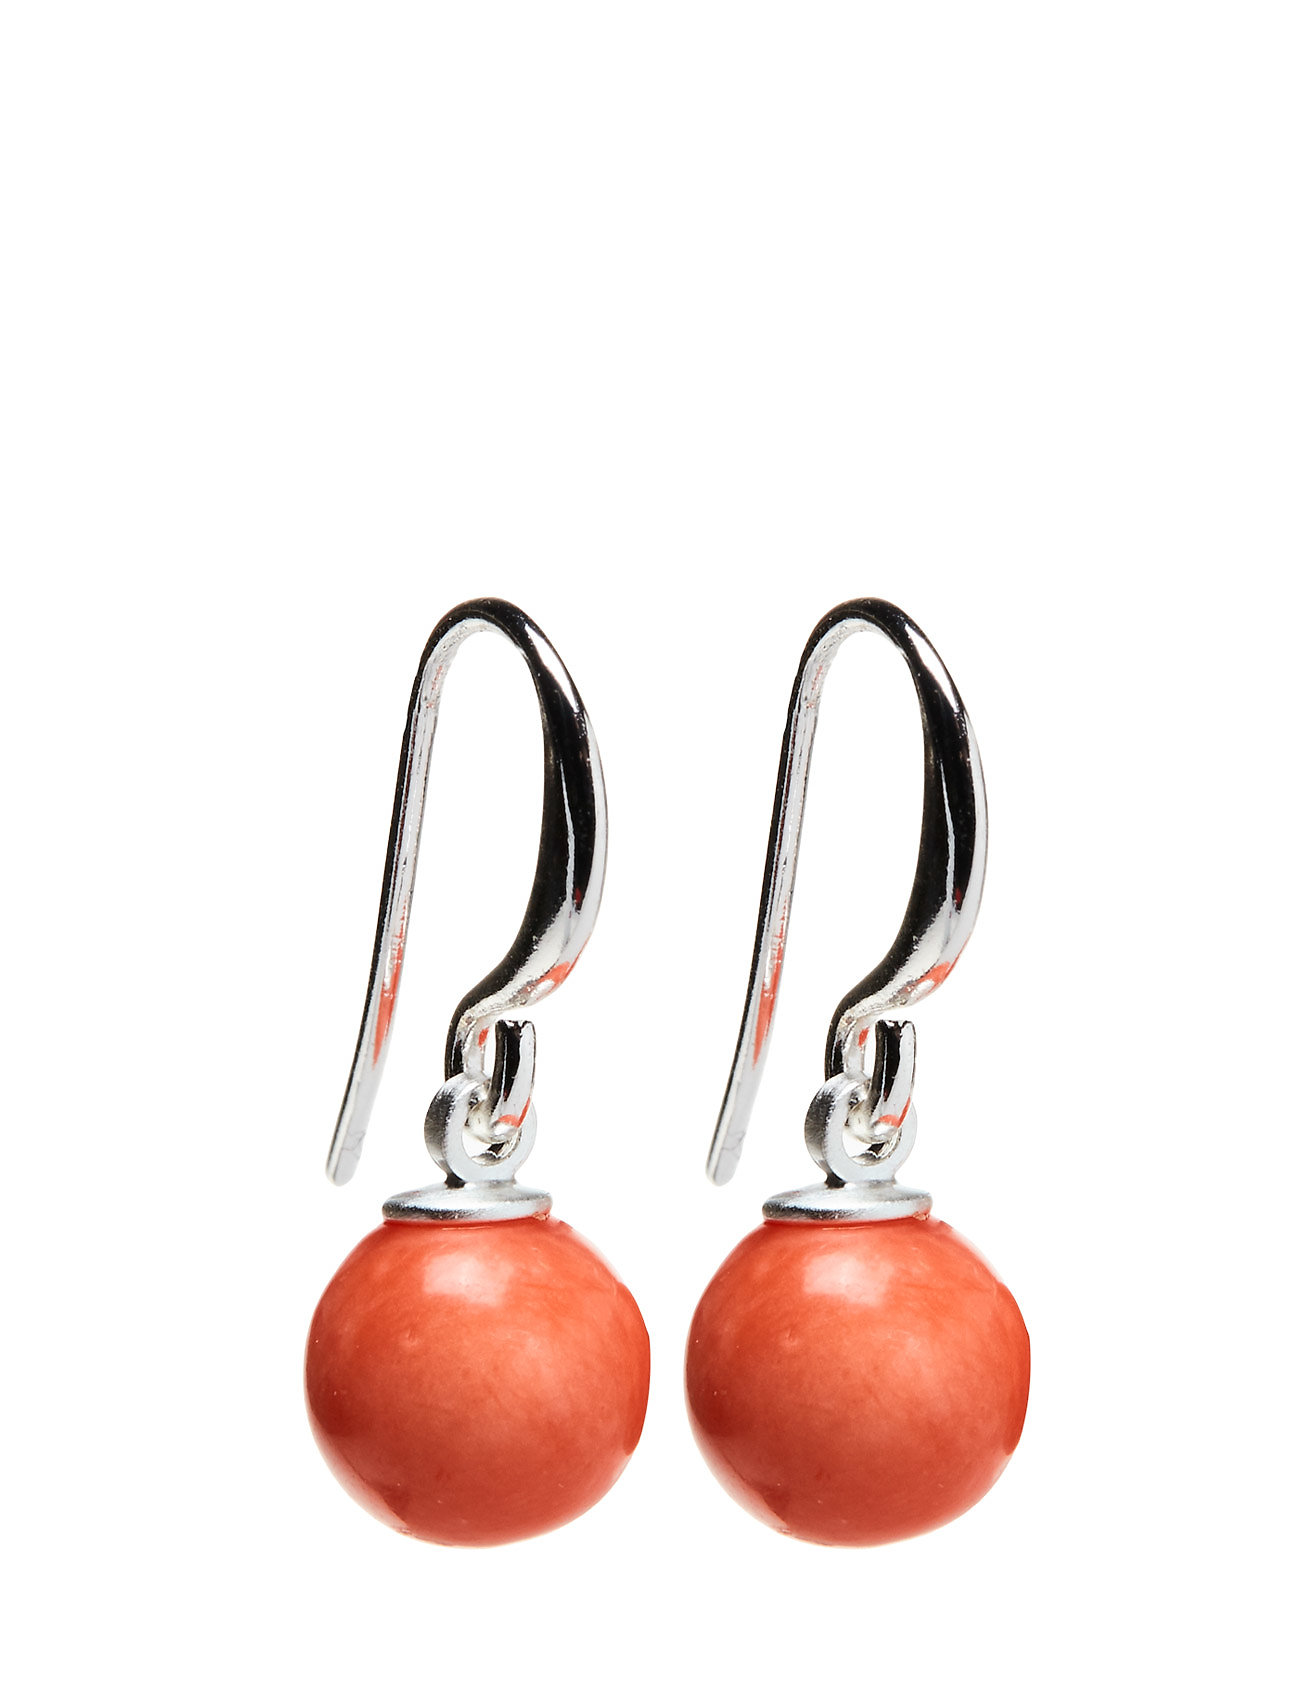 Earrings Silver Plated thumbnail